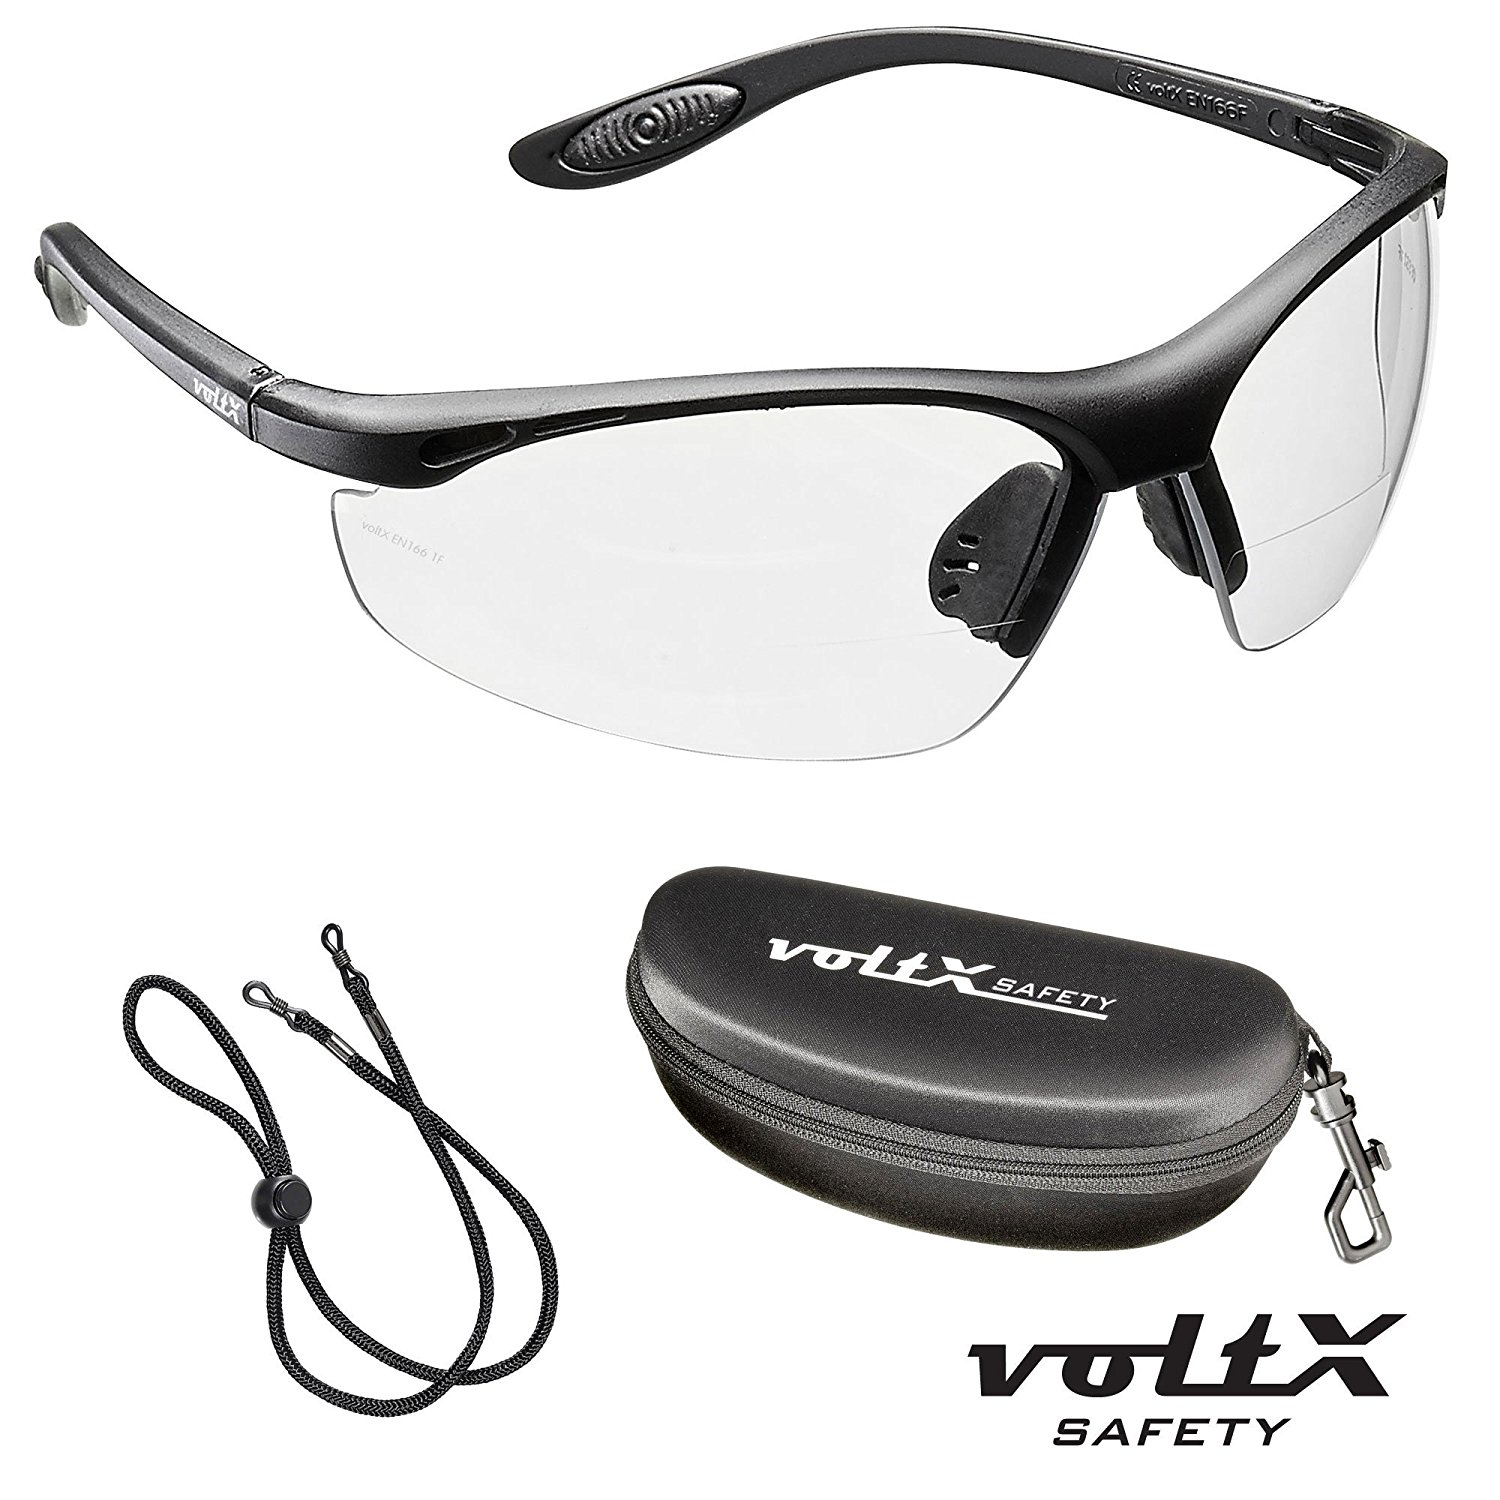 f4ebf5662e3 voltX  CONSTRUCTOR  BIFOCAL Reading Safety Glasses CE EN166F  certified Cycling Sports Glasses (